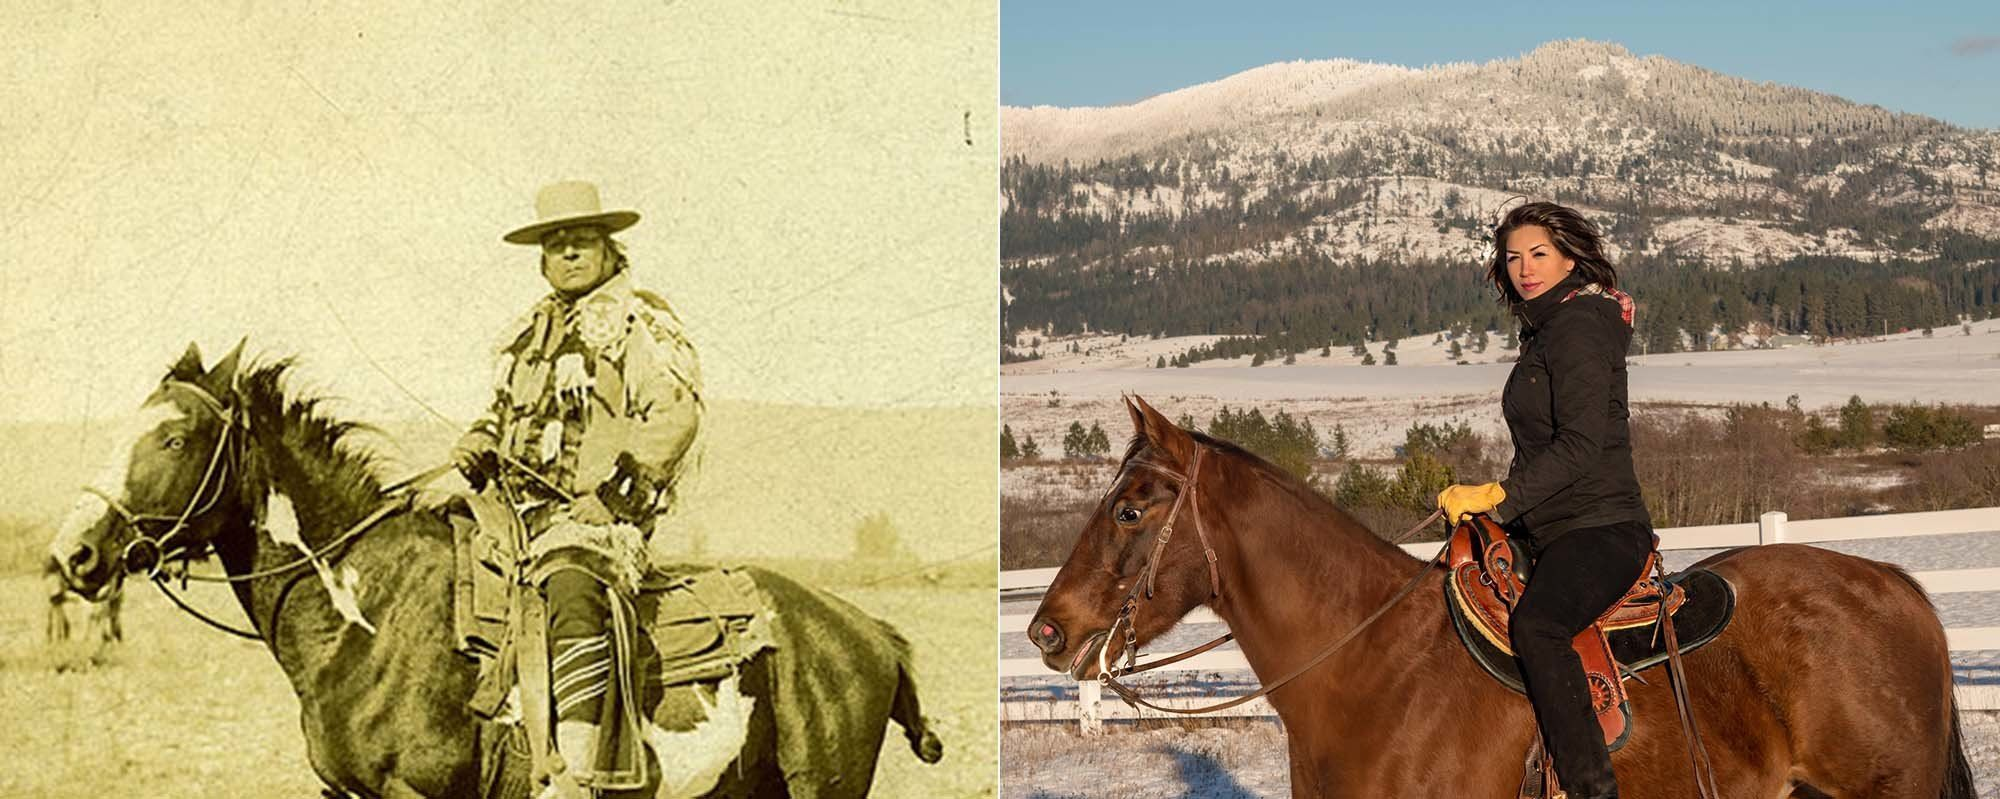 On the right, Jordan. On the left, in 1895, her great-grandfather Chief Moses,head chief of the Columbia band ofN